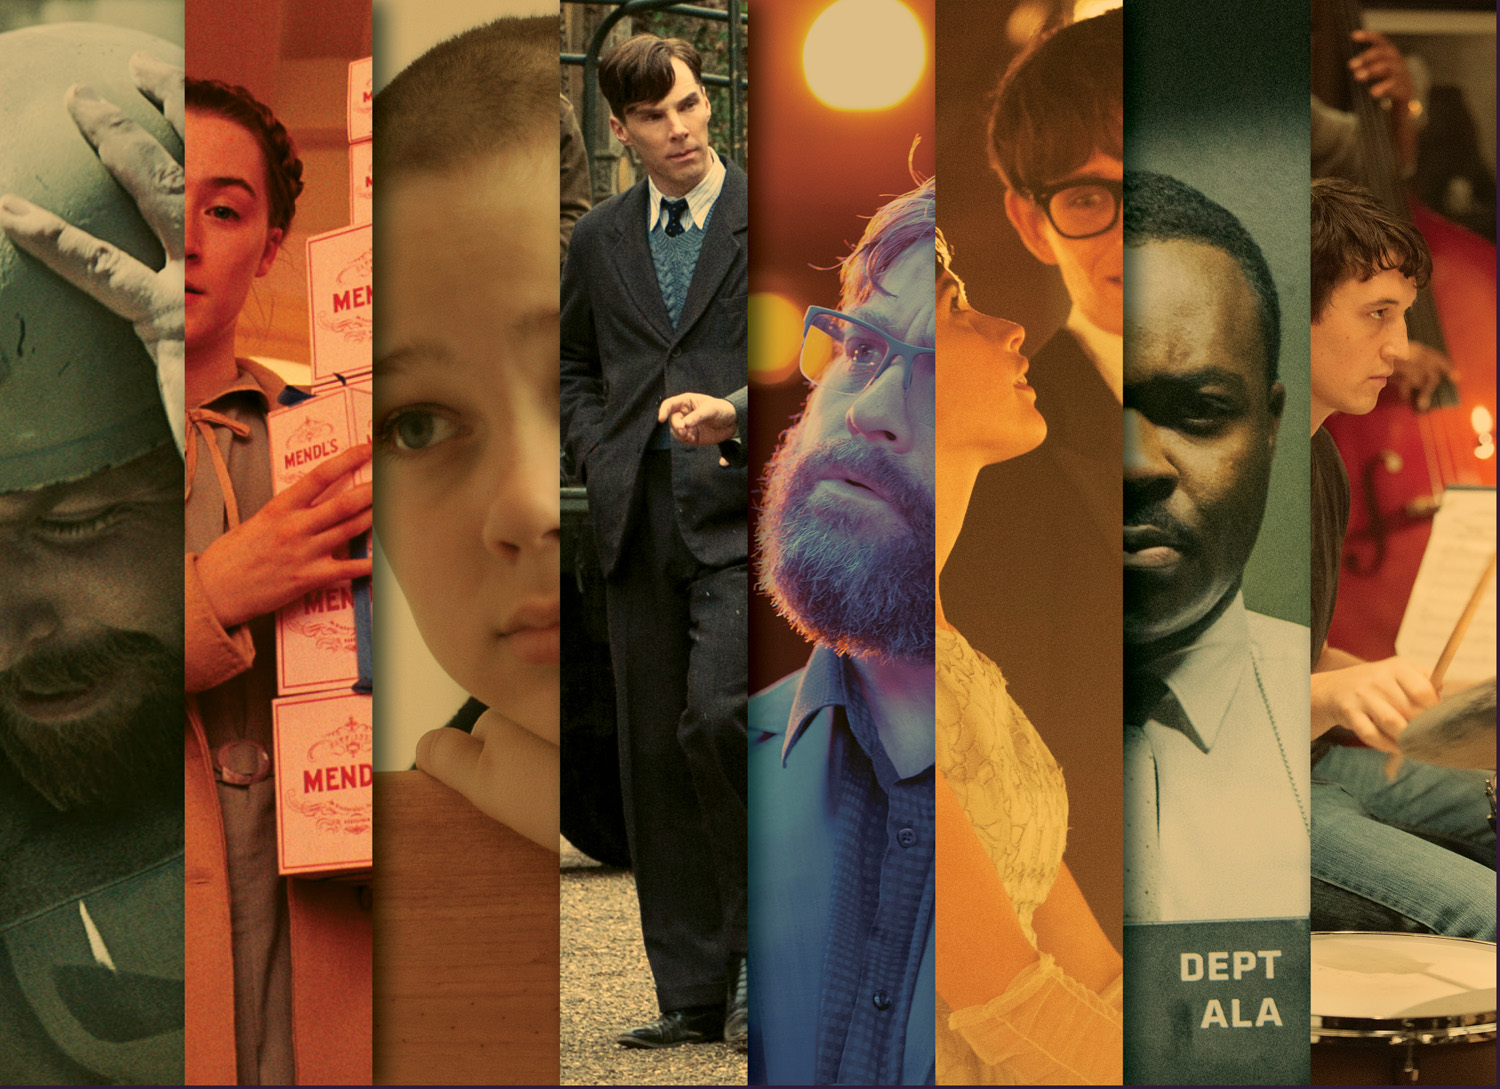 2015 Best Picture Contenders / The Hollywood Reporter / February 2015 / kelsey stefanson / art direction + graphic design / yeskelsey.com